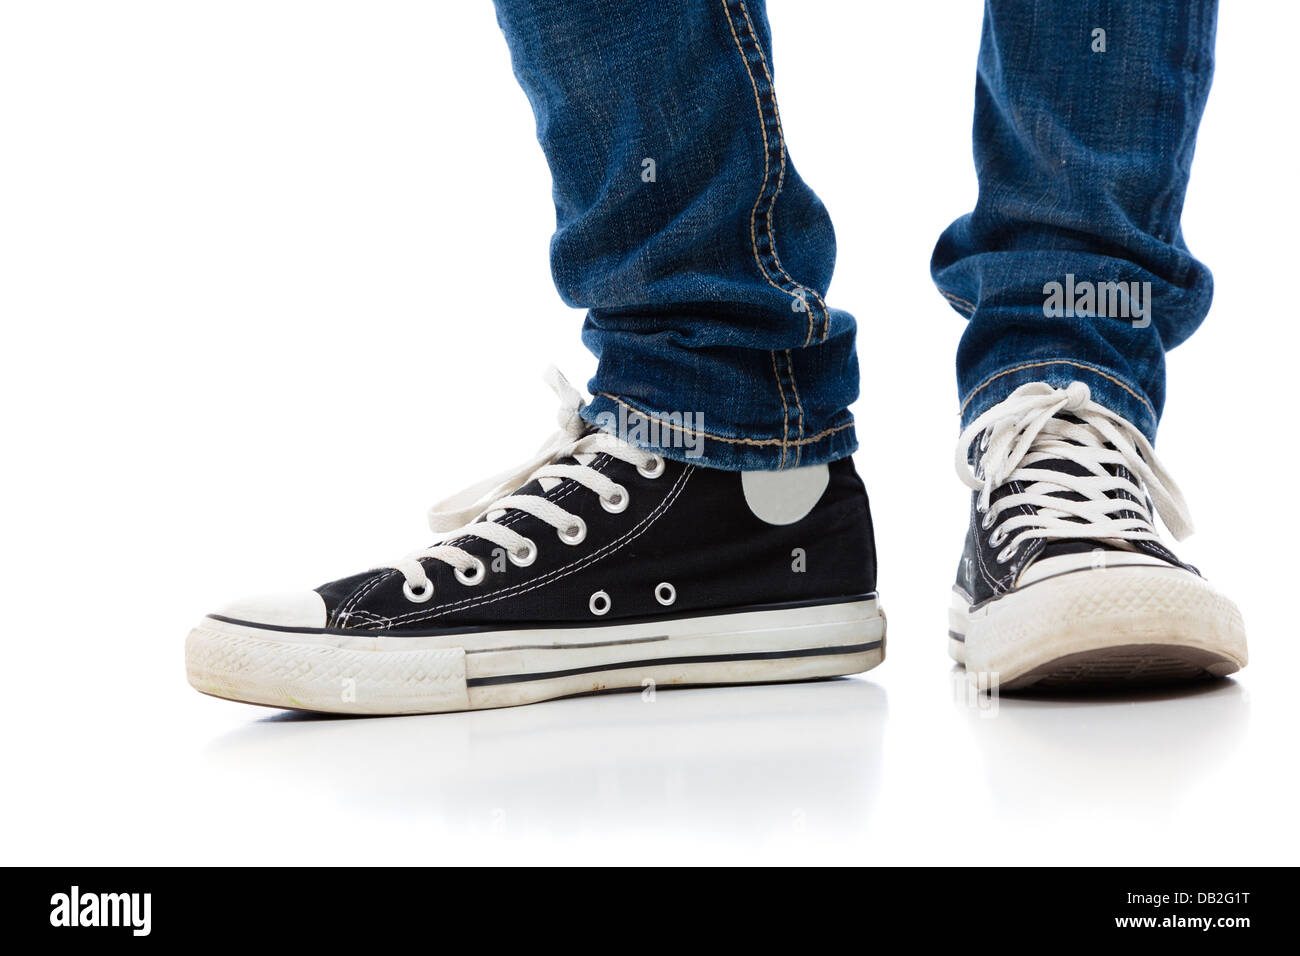 Legs With Tennis Shoes And Jeans On A White Background Stock Photo